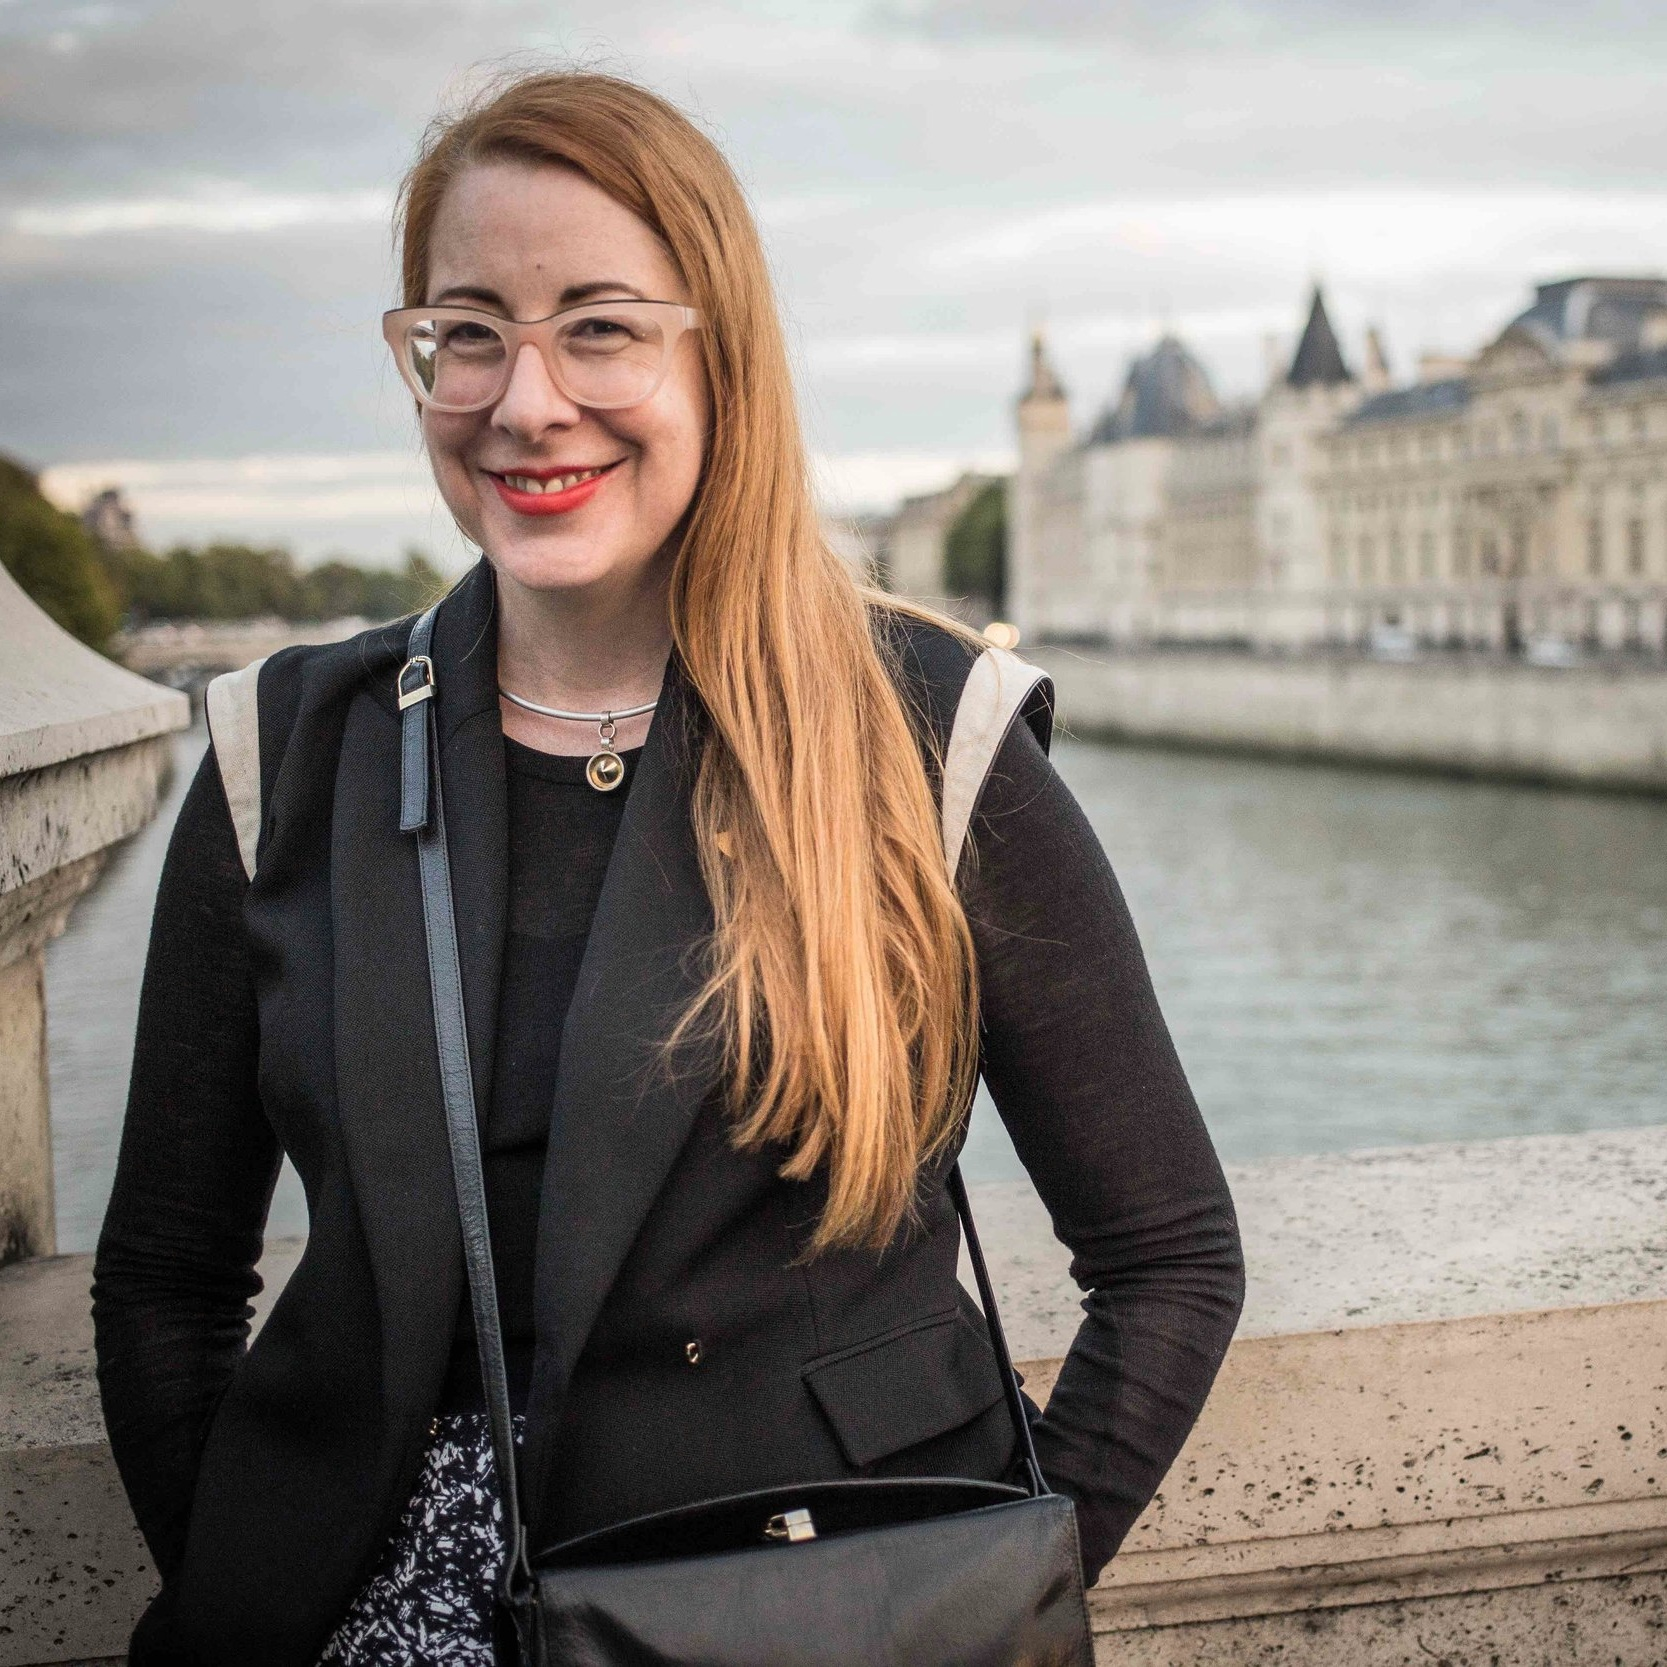 Paris Tour Launch PartyJoin FXT founder, Leah Van Loon, for a launch party and overview of our once in a lifetime7 day experience in the City of Lights.May 2nd ~ 6:30 PM at cSpace1721 29 Ave SW, Calgary - Refreshments by Peasant Cheese and J. Webb